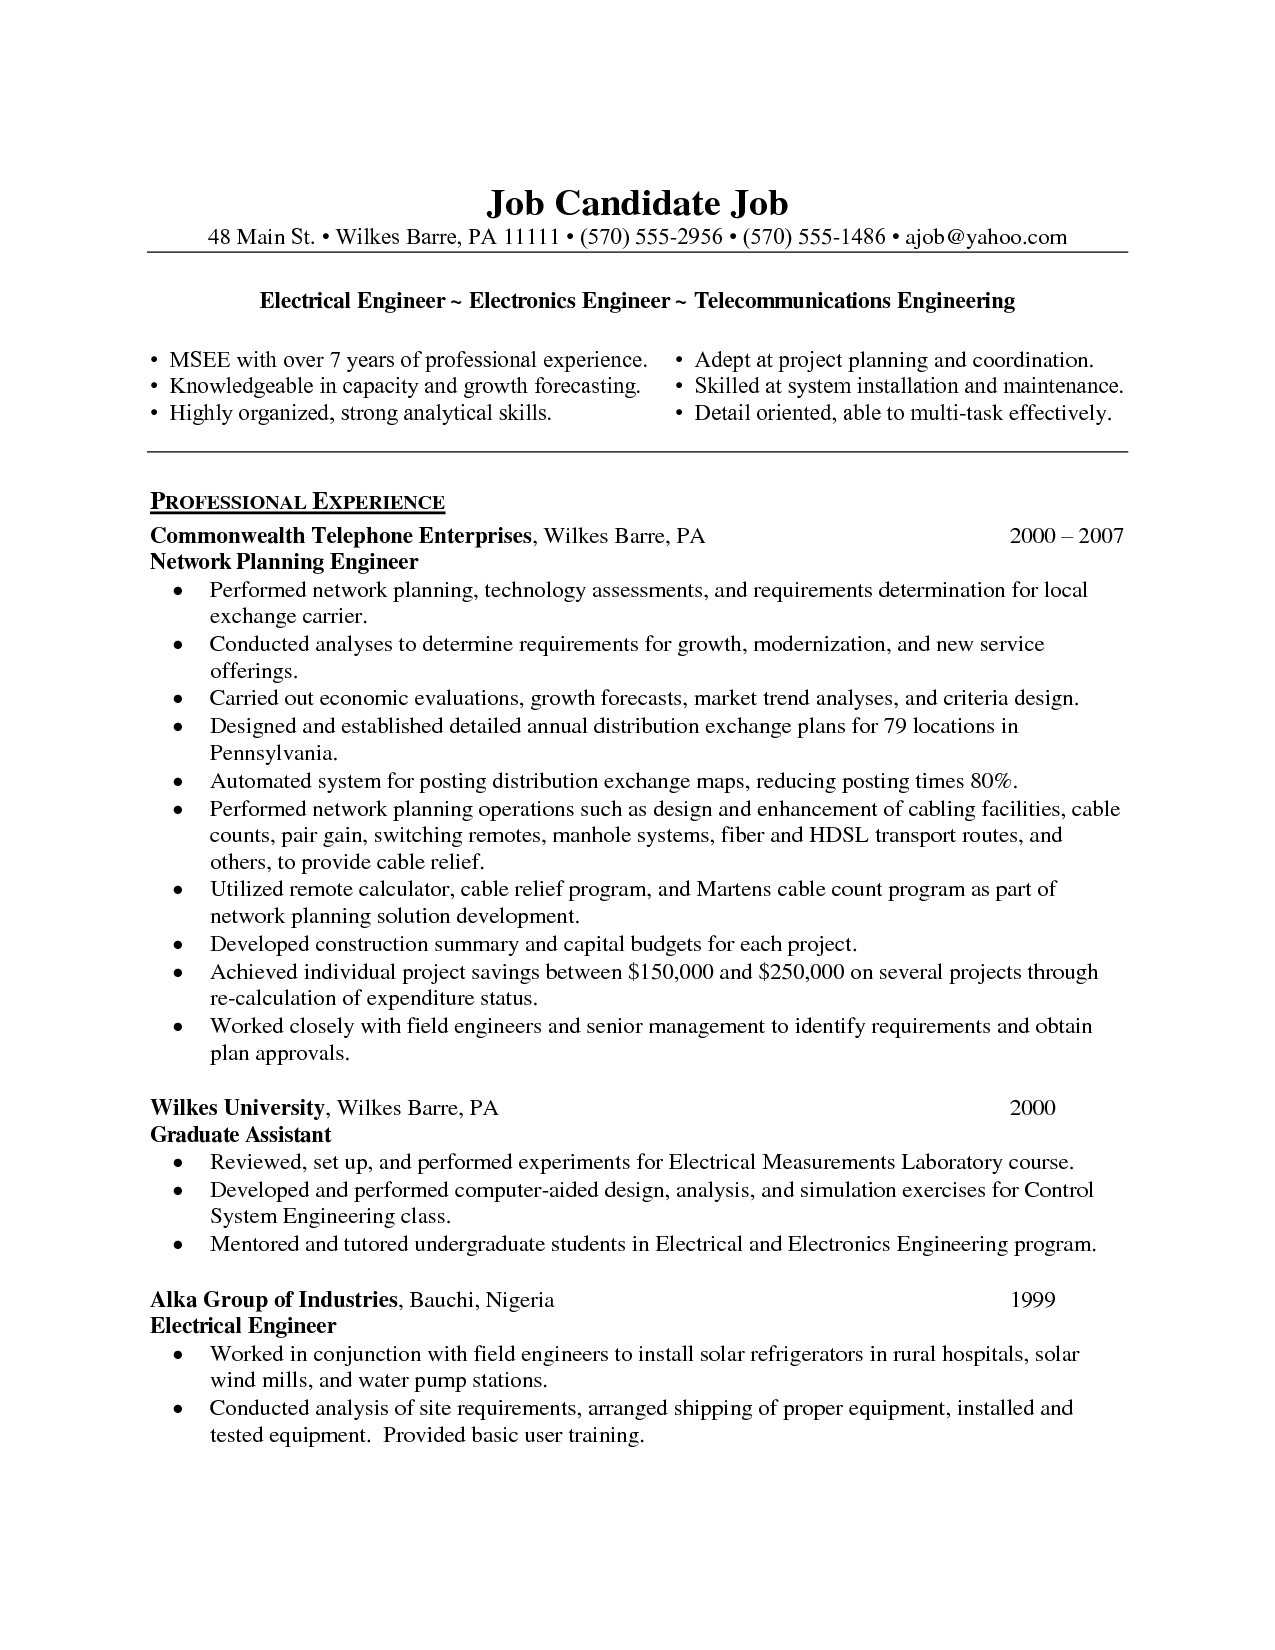 Perfect Electrical Engineer Resume Example   Http://www.resumecareer.info/electrical  Engineer Resume Example 15/